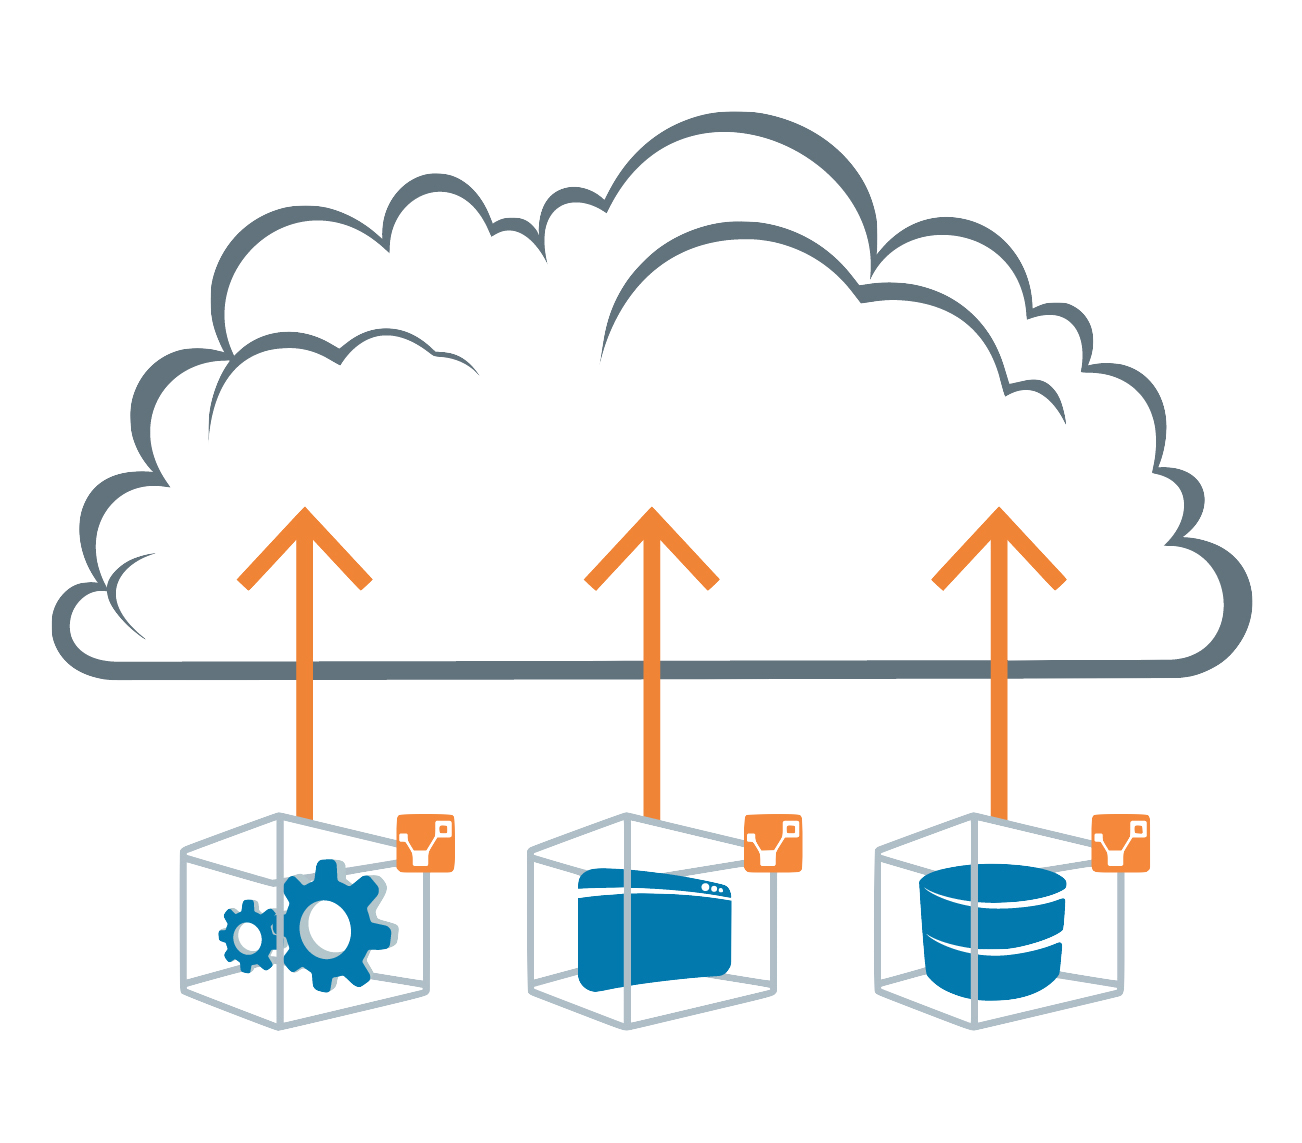 AWS Managed & secure cloud